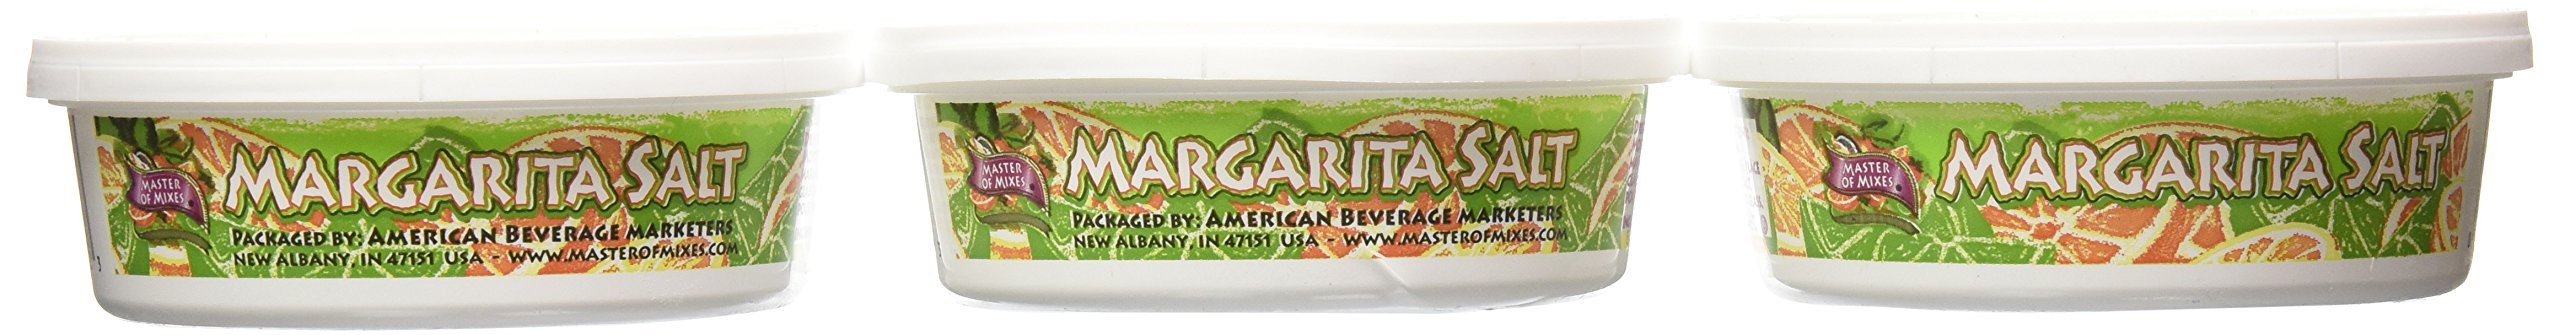 Master of Mixes Margarita Salt,  8-Ounce (Pack of 12) by Master of Mixes (Image #3)